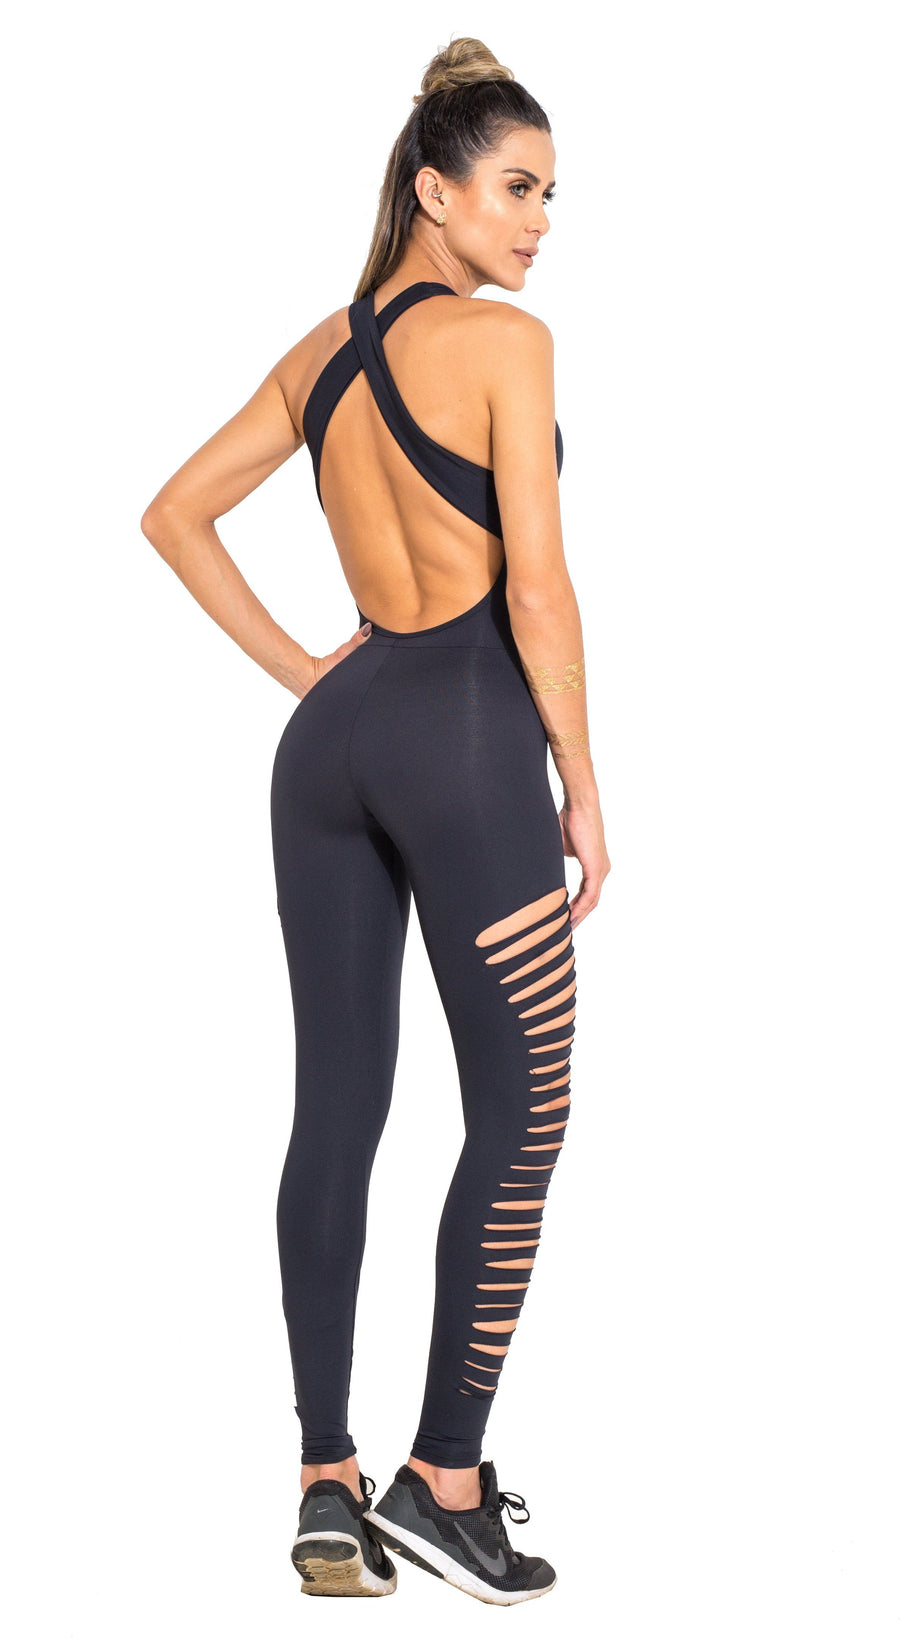 Brazilian Workout Jumpsuit  - Ripped Heroine Black